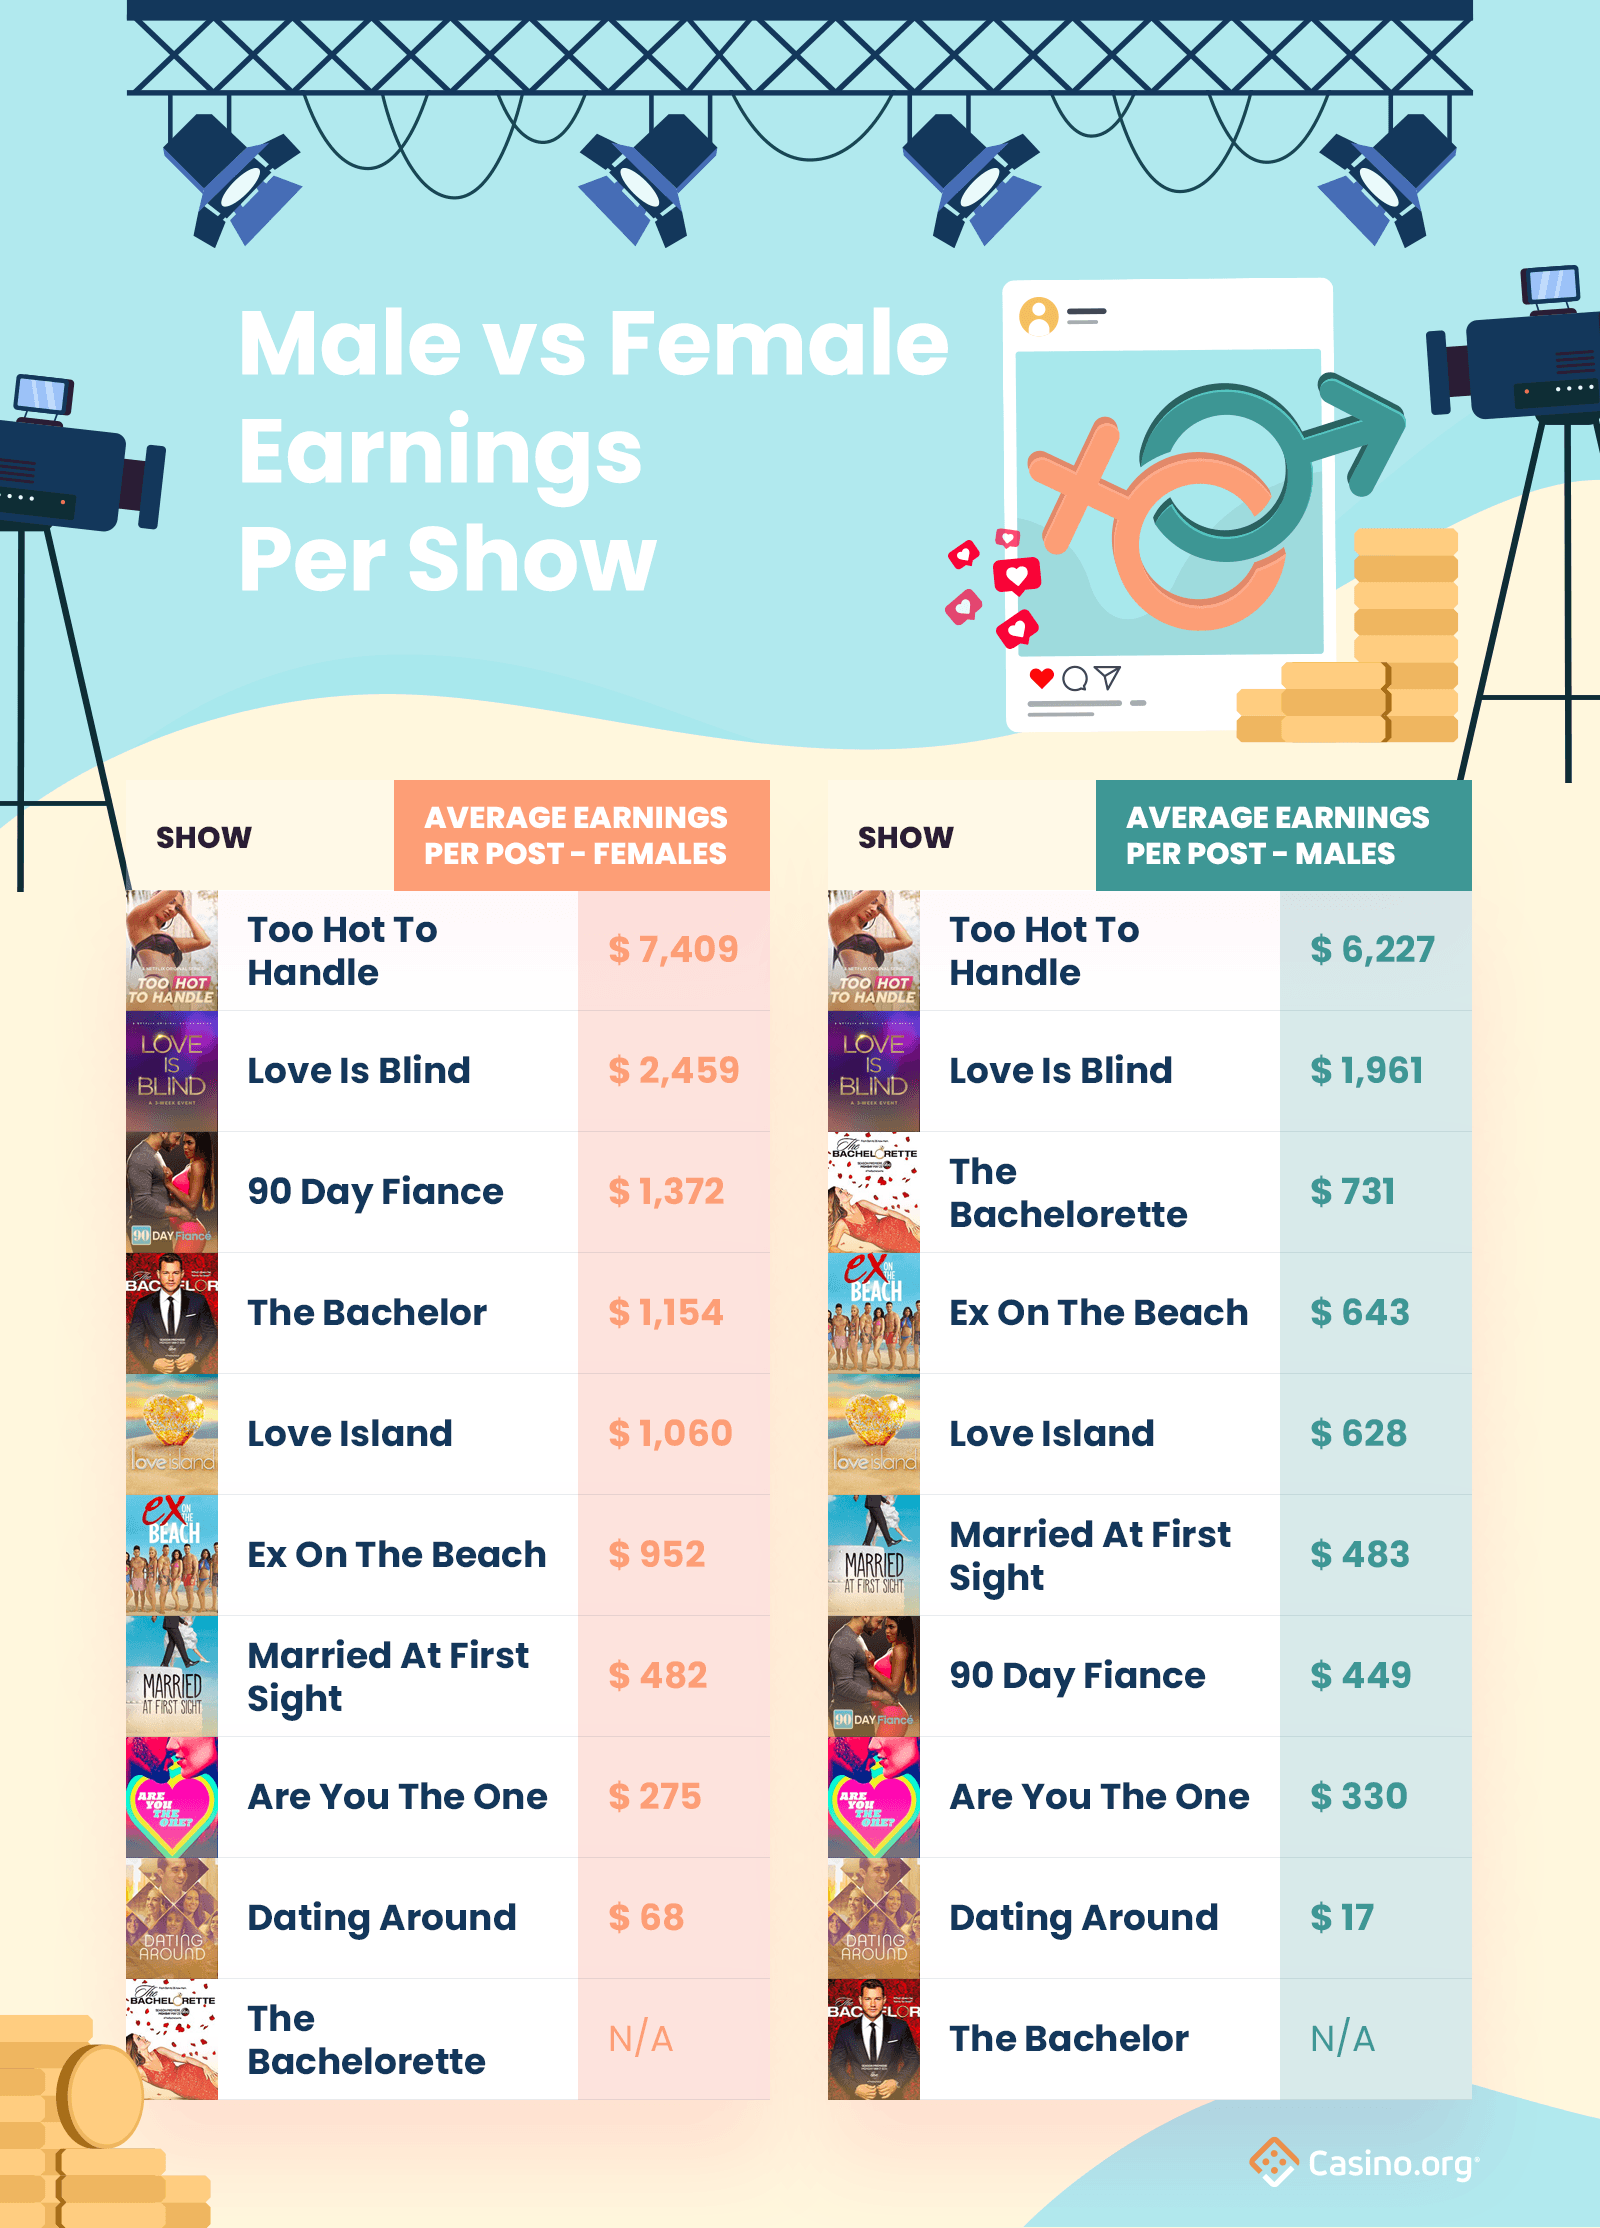 Reality show earnings infographic - insta earners, males v females